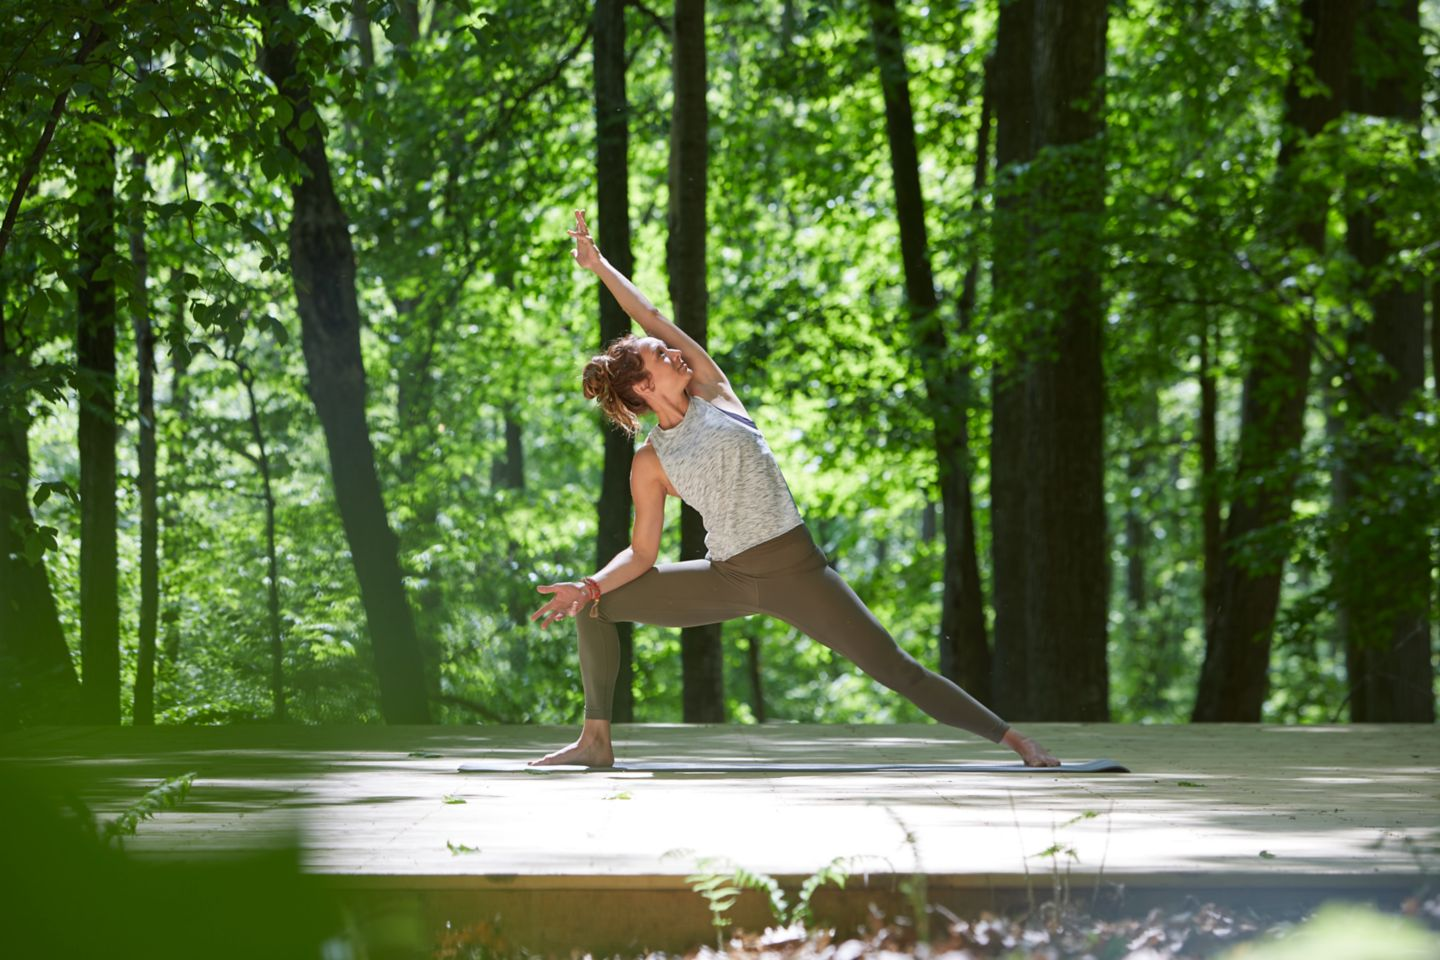 outdoor yoga on a wooden platform in the woods